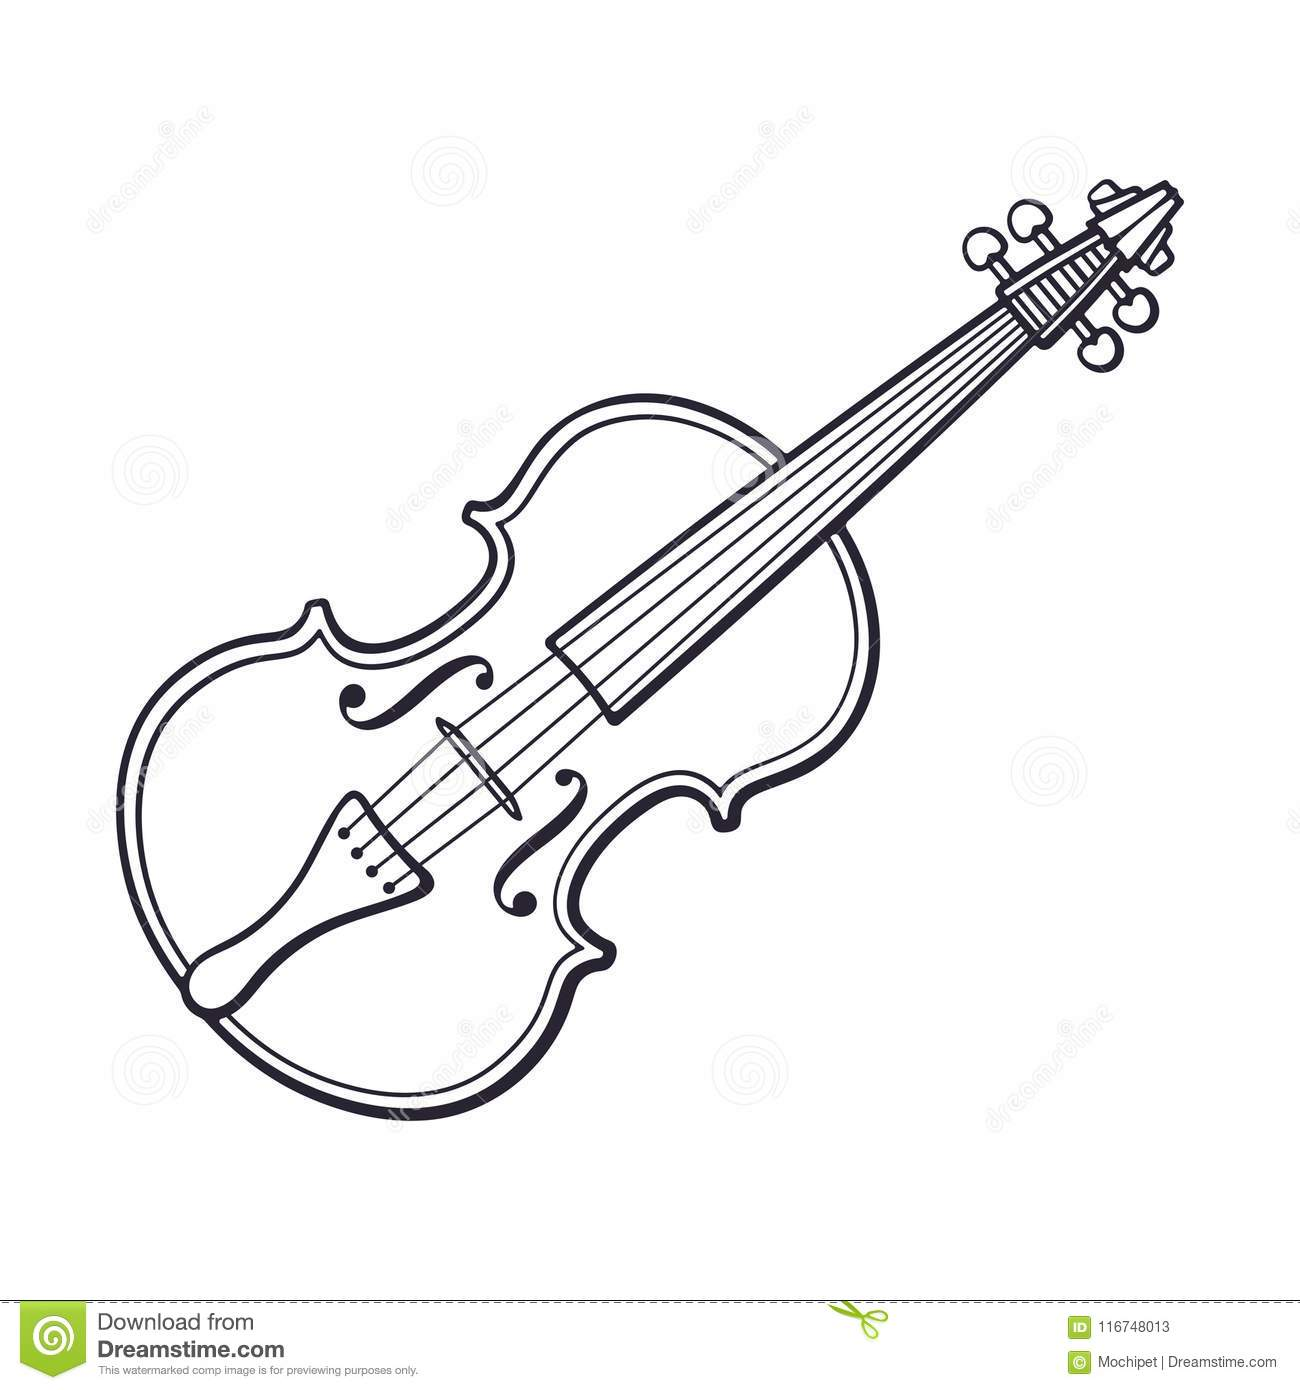 Doodle Of Classic Violin Without A Bow Stock Vector